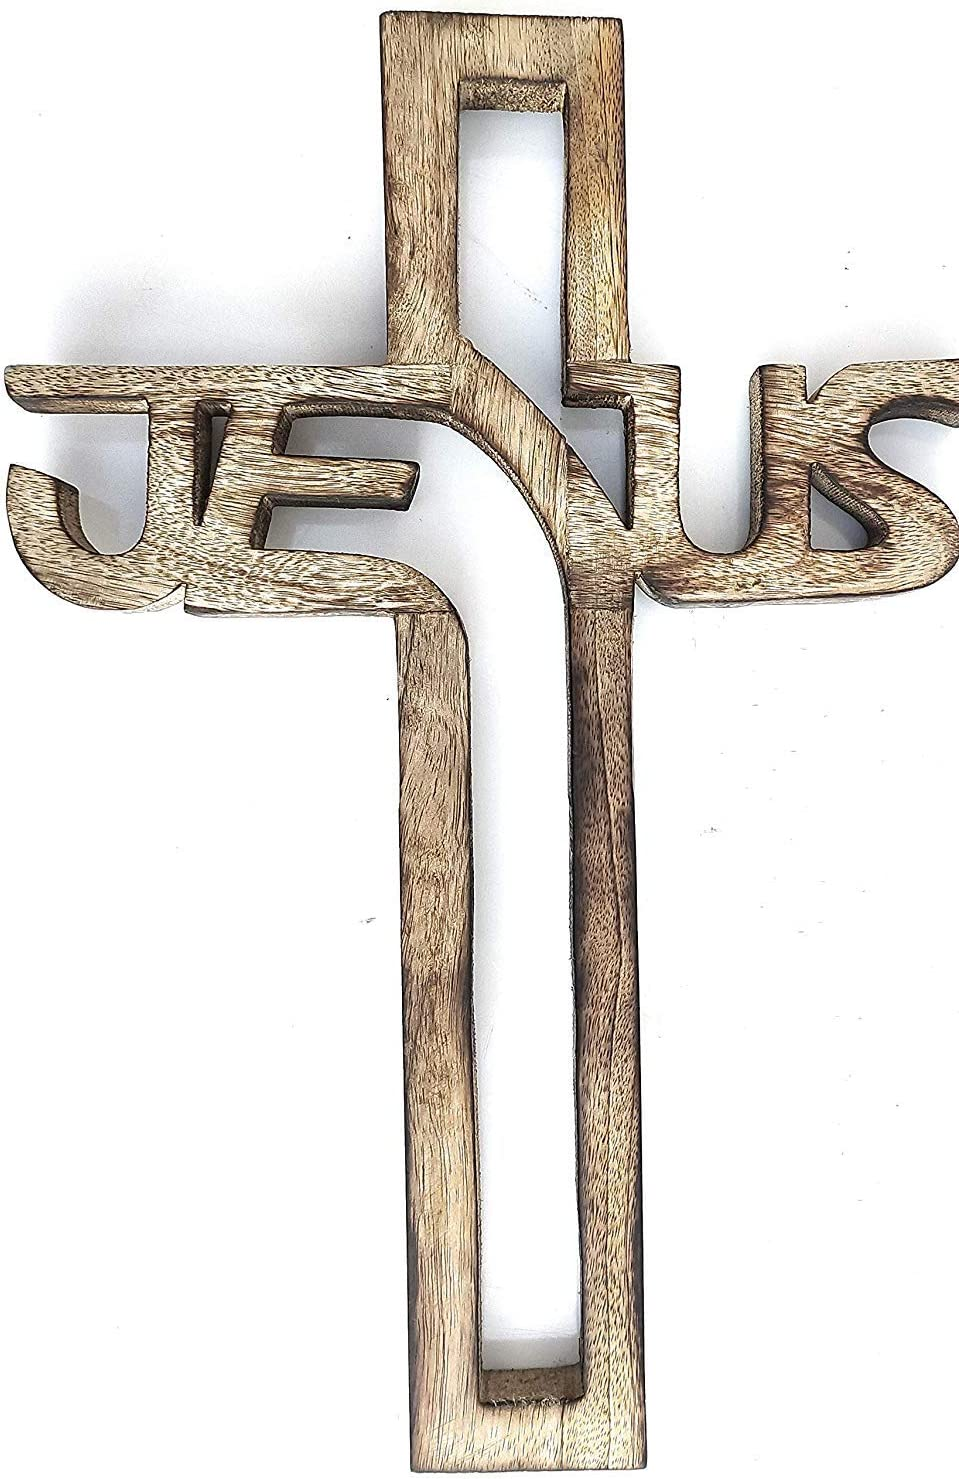 Earthly Home Christian Wooden Wall Cross Handmade Antique Design French Plaque Hanging Wall Crucifix Jesus Christ Hanging Cross for Wall Decor, Church Hanging Ornament, Living Room Home Chapel Decor